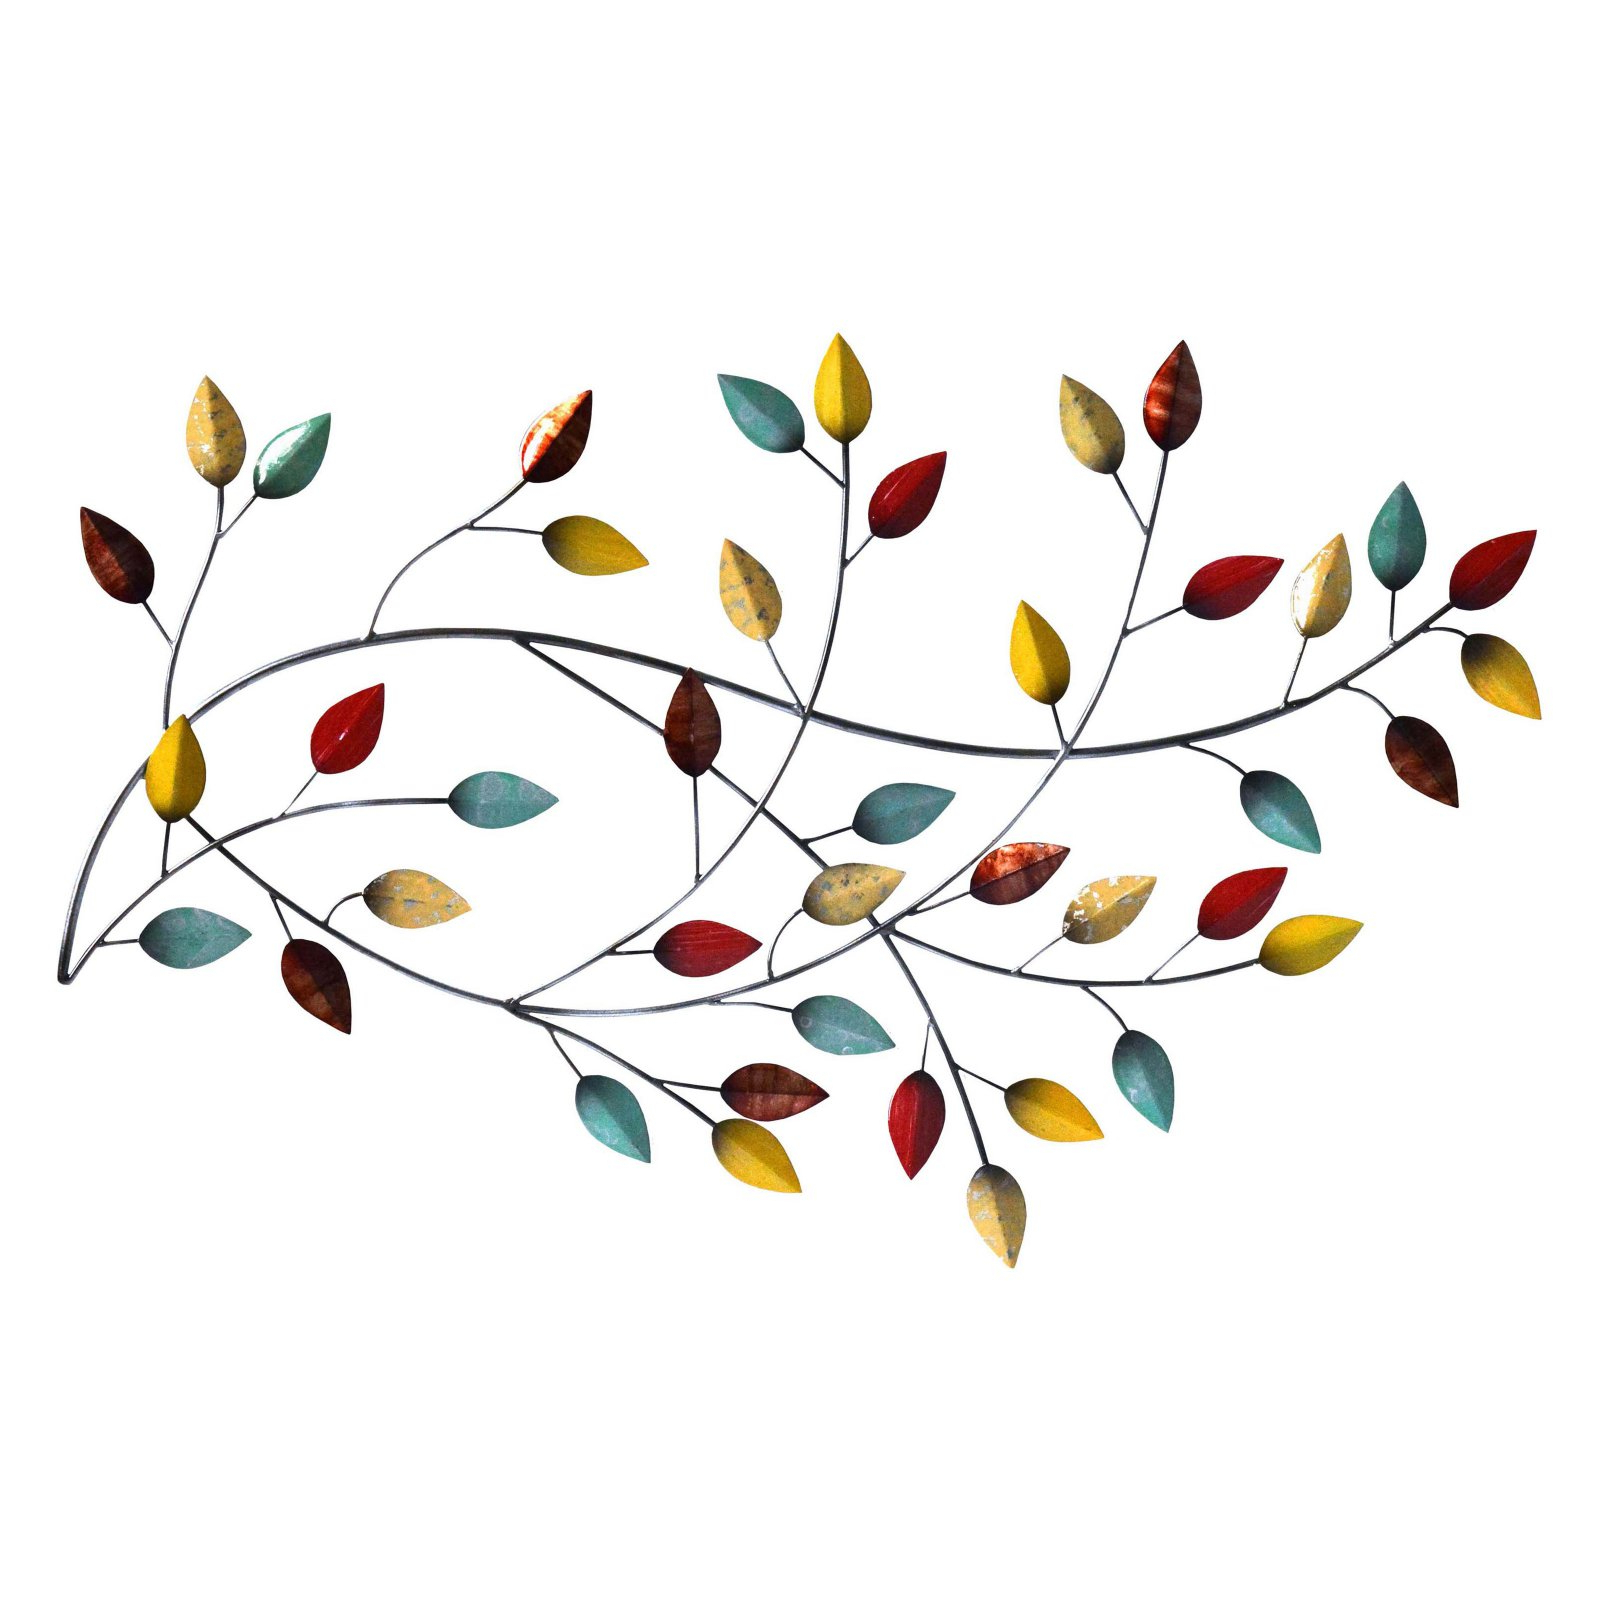 Blowing Leaves Wall Decor Inside Fashionable Stratton Home Decor Autumn Blowing Leaves Wall Decor – Walmart (View 16 of 20)